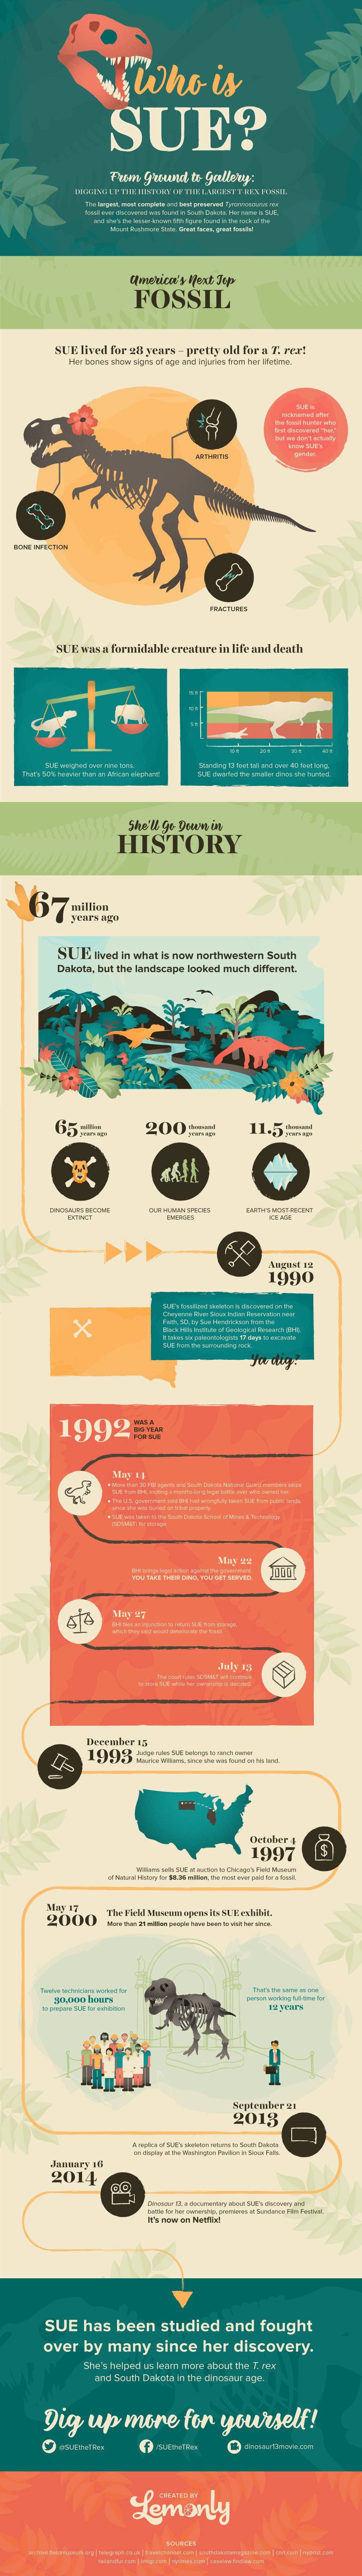 Tales of Sue the Dino: South Dakota's Biggest Find - Infographic